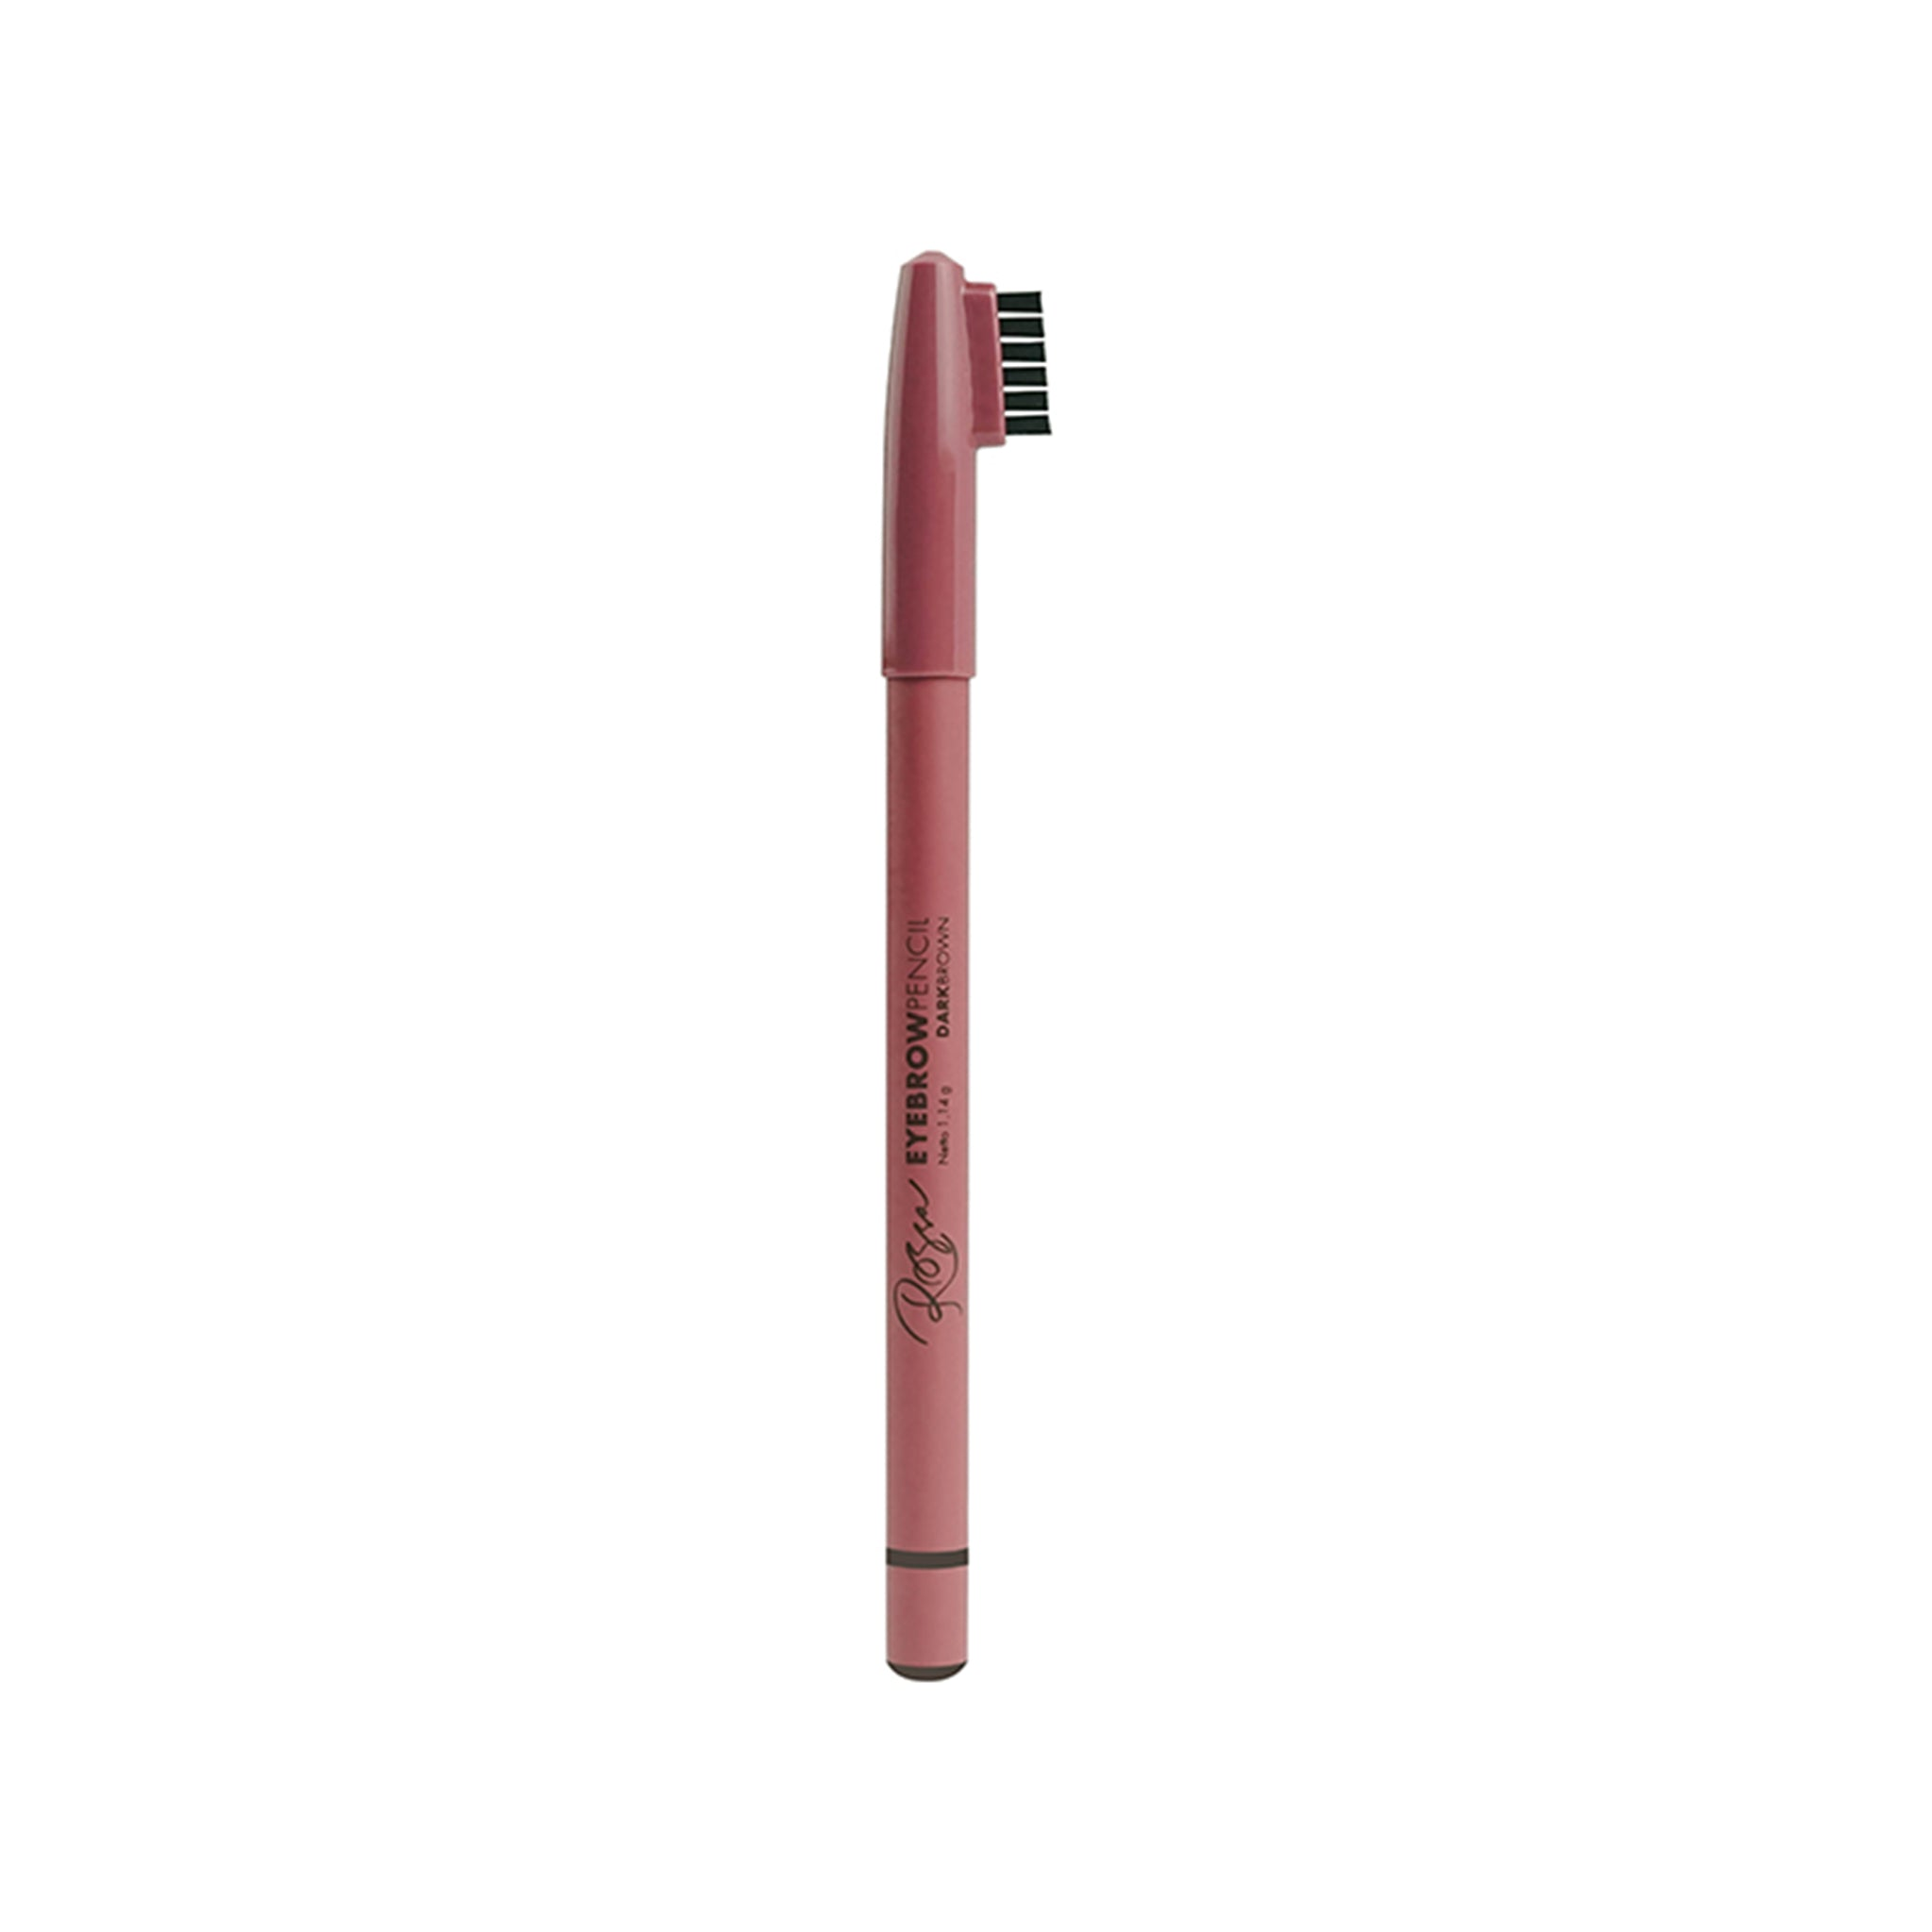 Rossa Beauty Eyebrow Pencil - Darkbrown